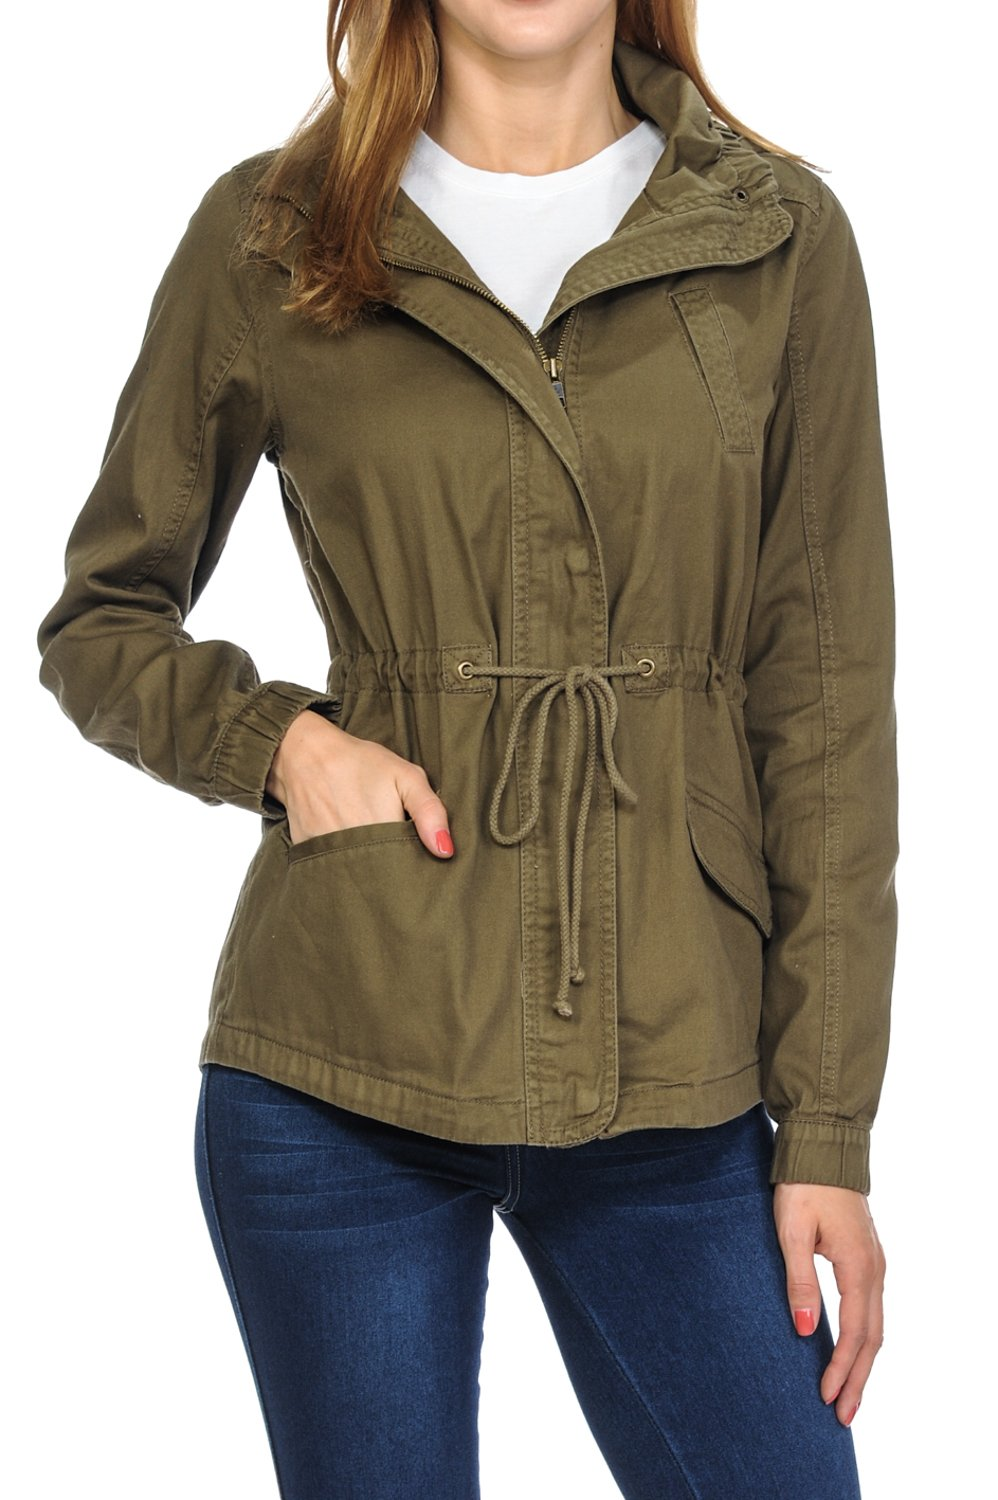 Women's Premium Vintage Wash Lightweight Military Fashion Twill Hoodie Jacket Olive M by Auliné Collection